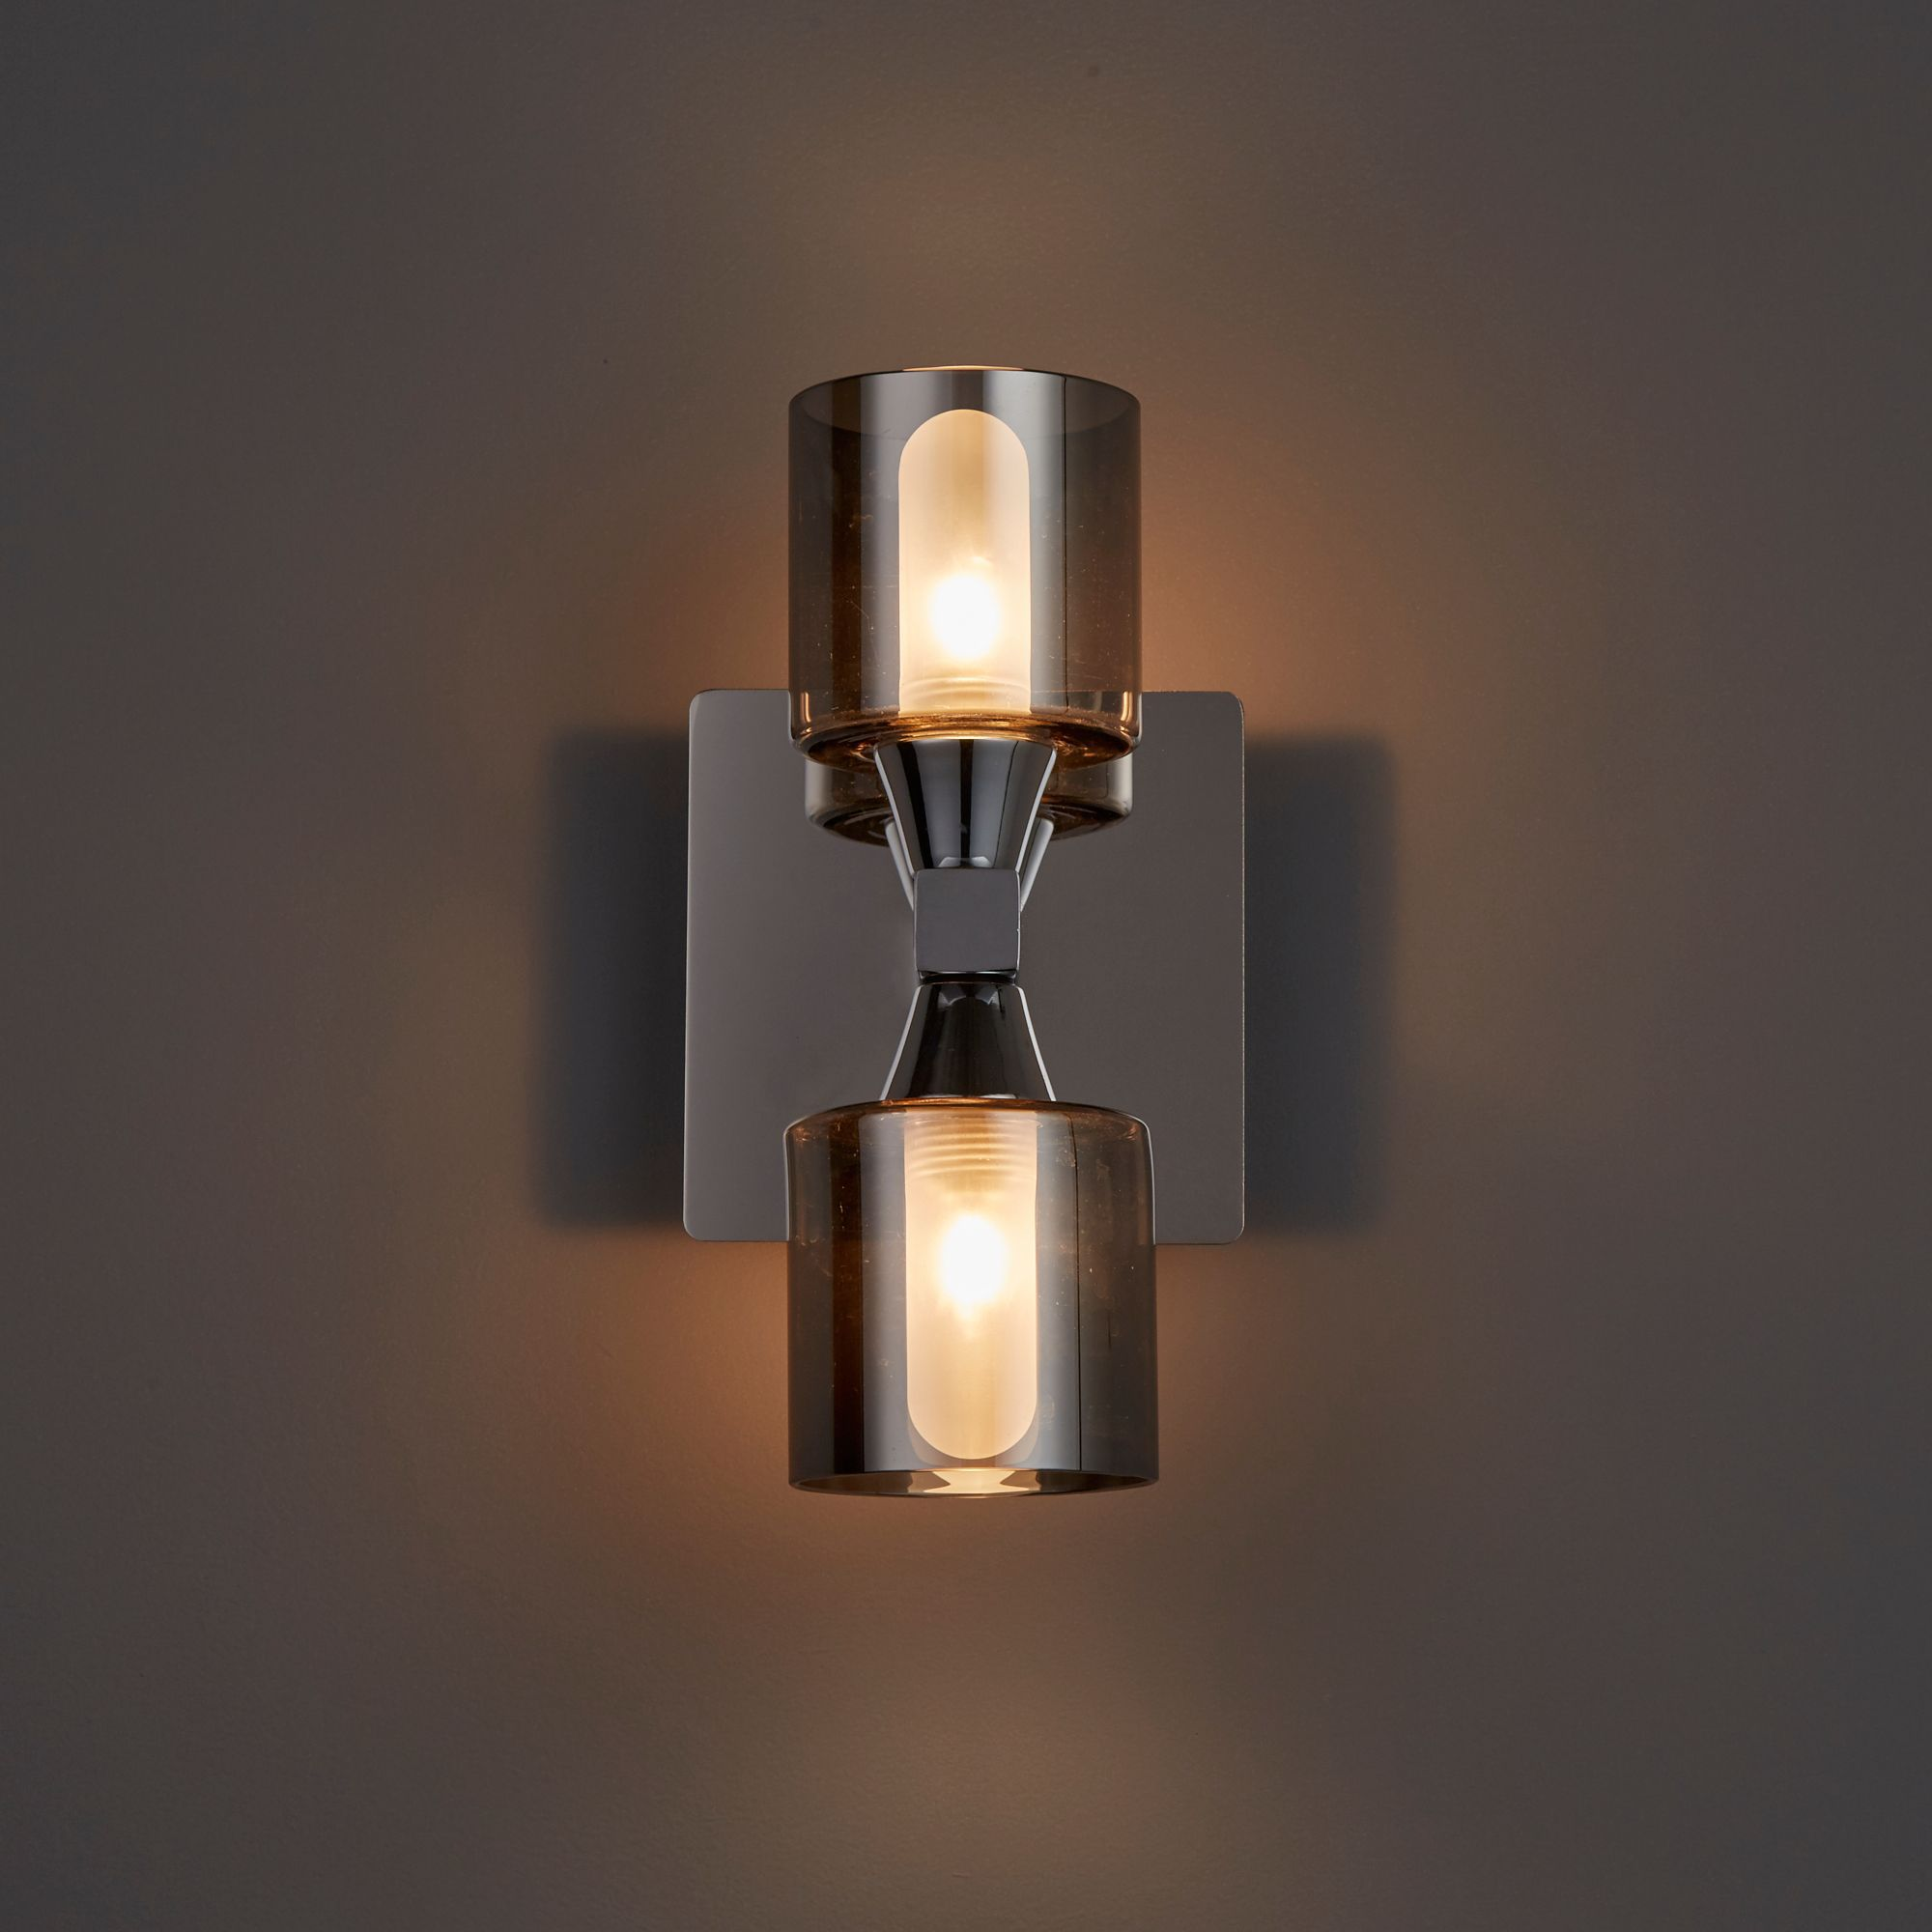 Cobark Smoked effect Bathroom Wall light | Departments ...